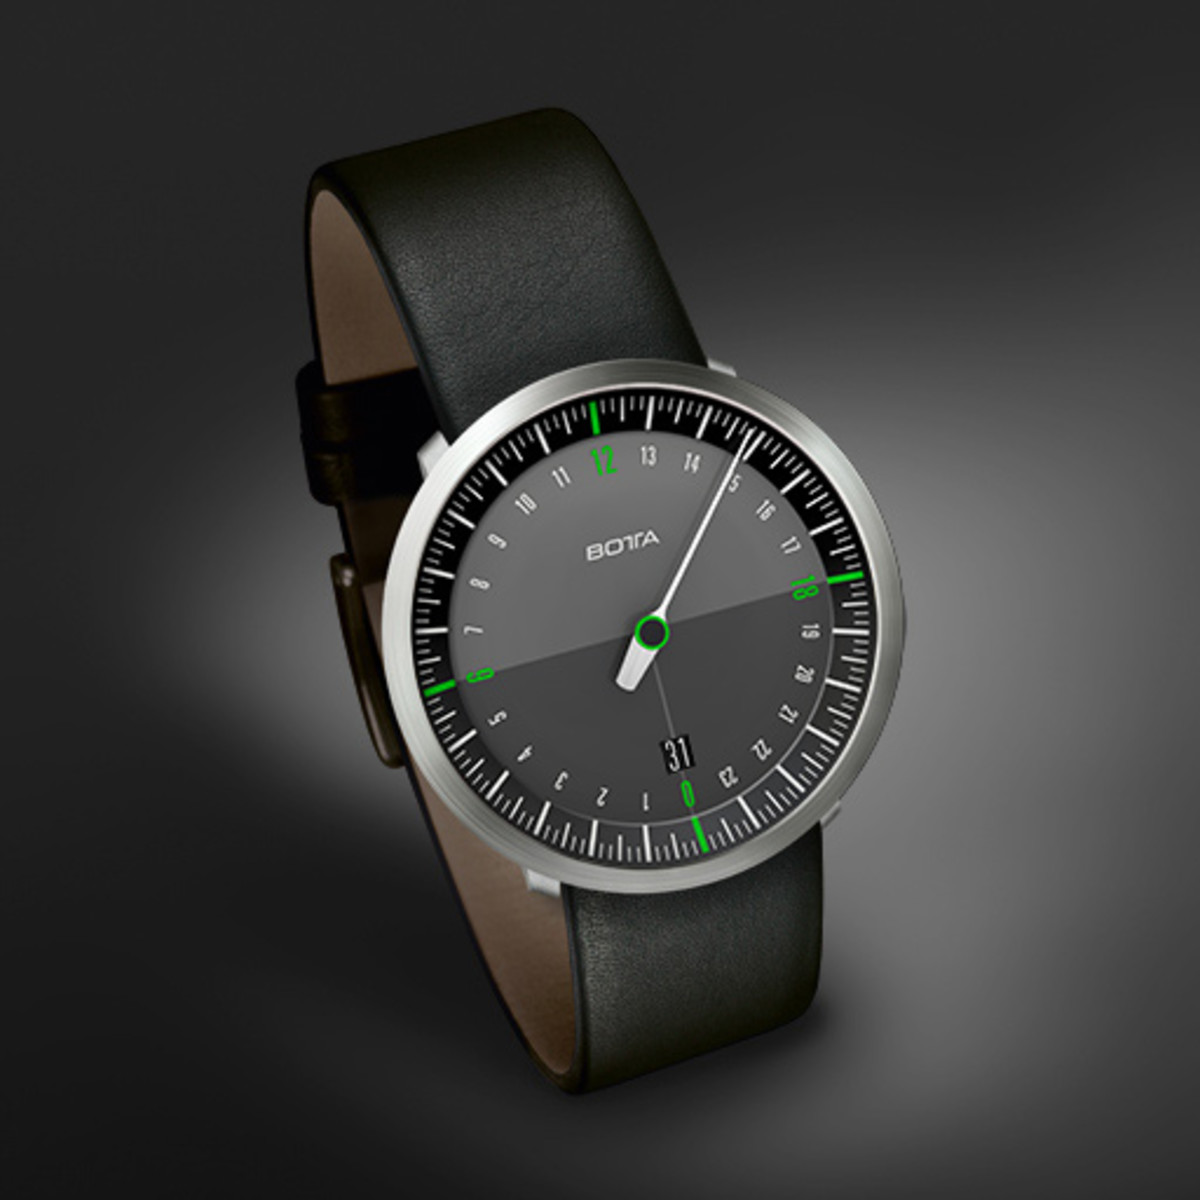 botta-design-uno-24-neo-watch-02